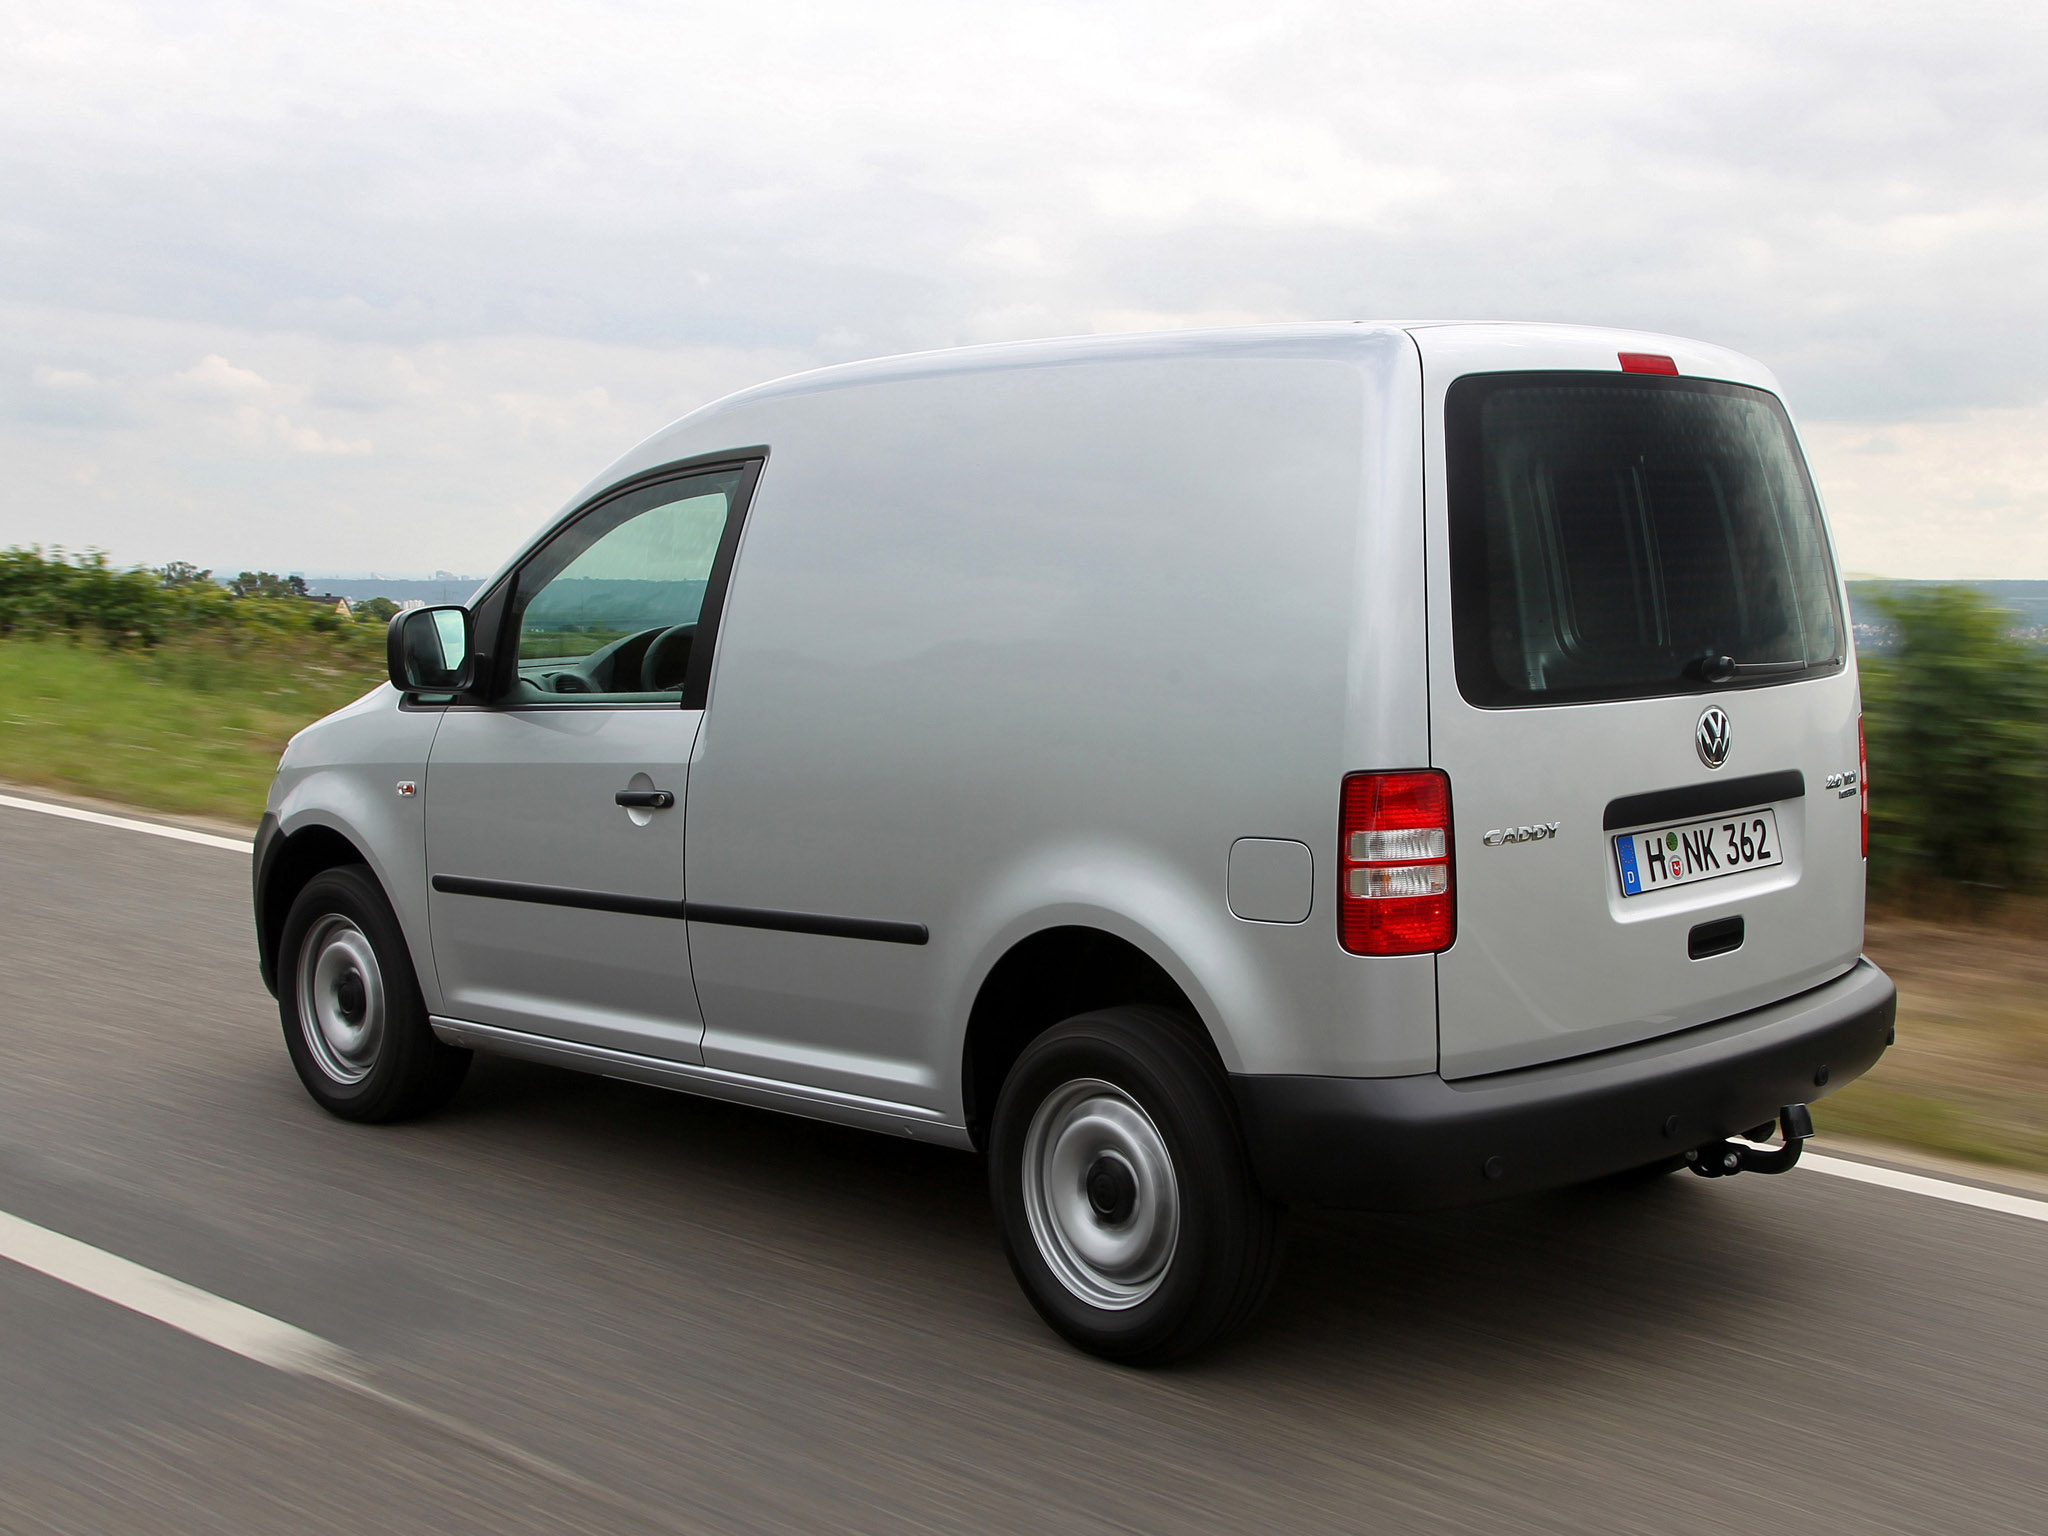 volkswagen caddy van 2010 volkswagen caddy van 2010 photo 11 car in pictures car photo gallery. Black Bedroom Furniture Sets. Home Design Ideas